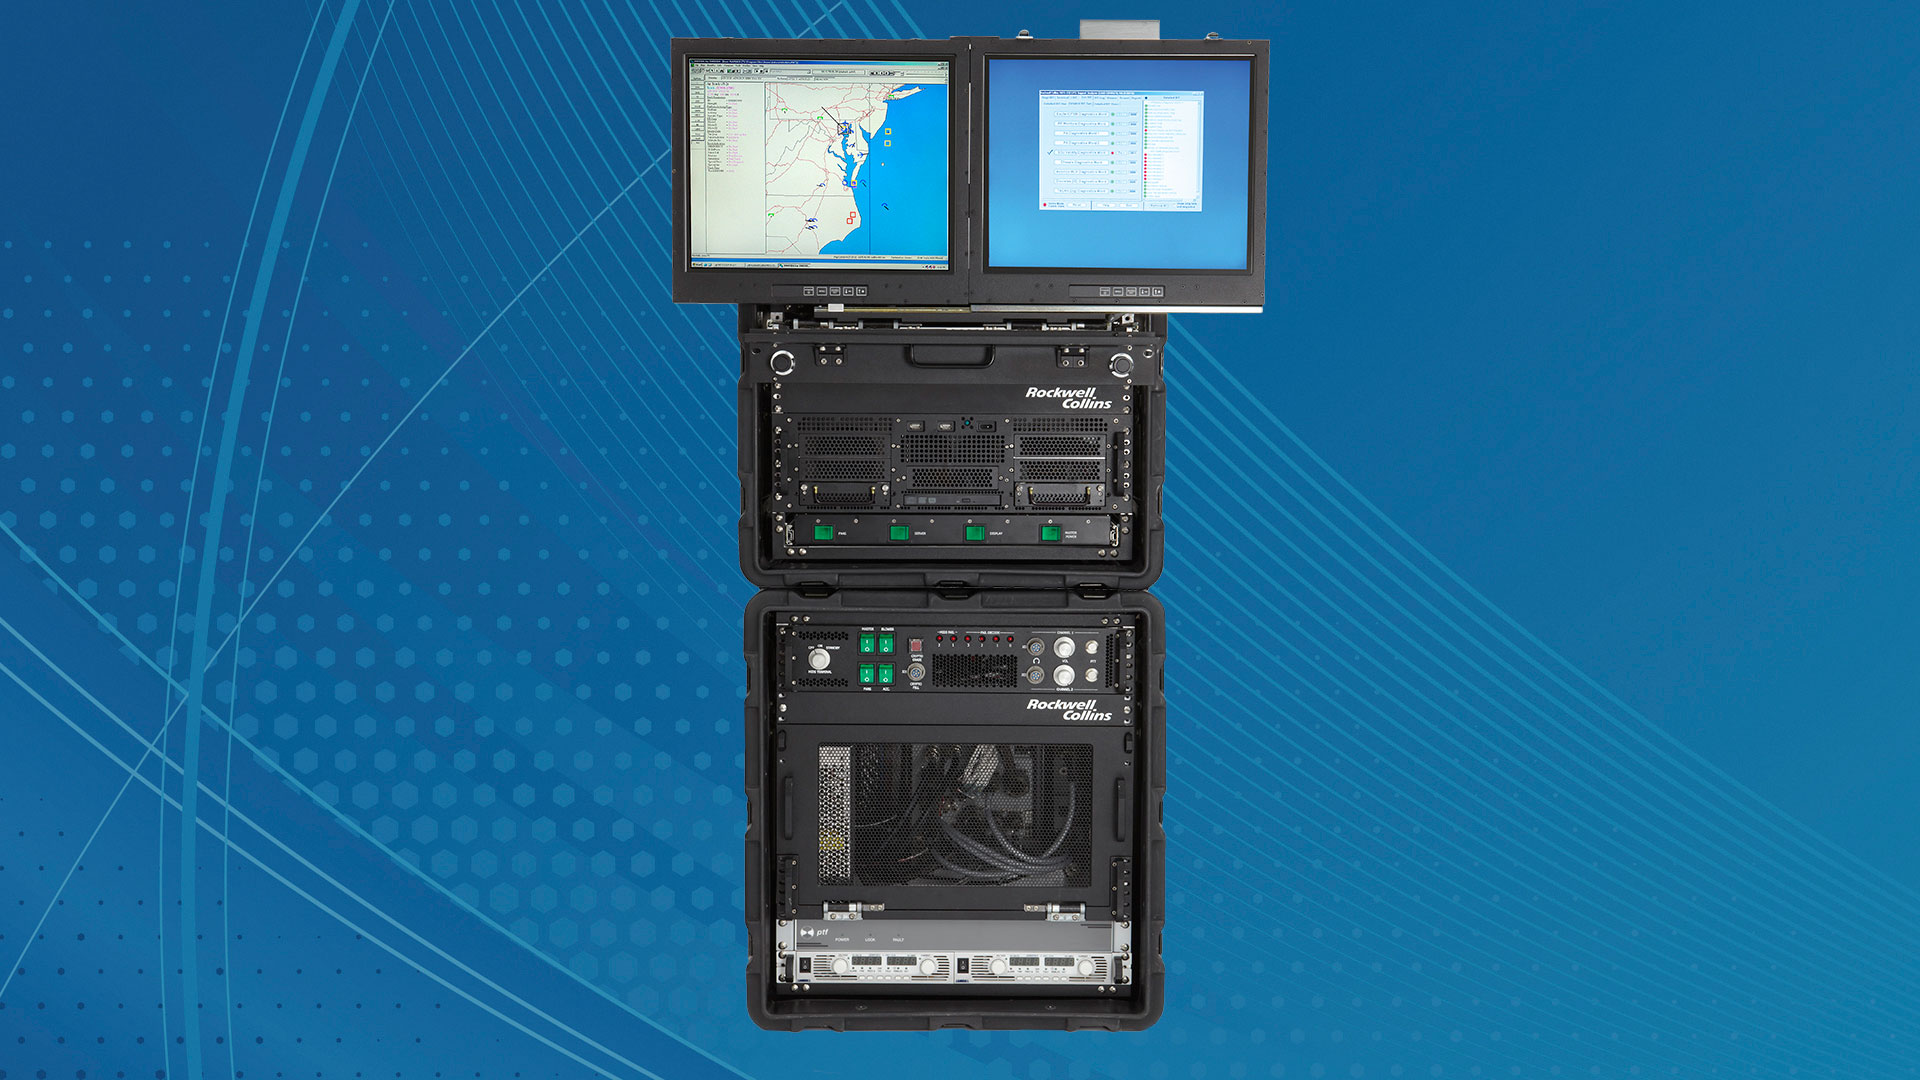 Image of a Mobile Integration and Test Environment set-up